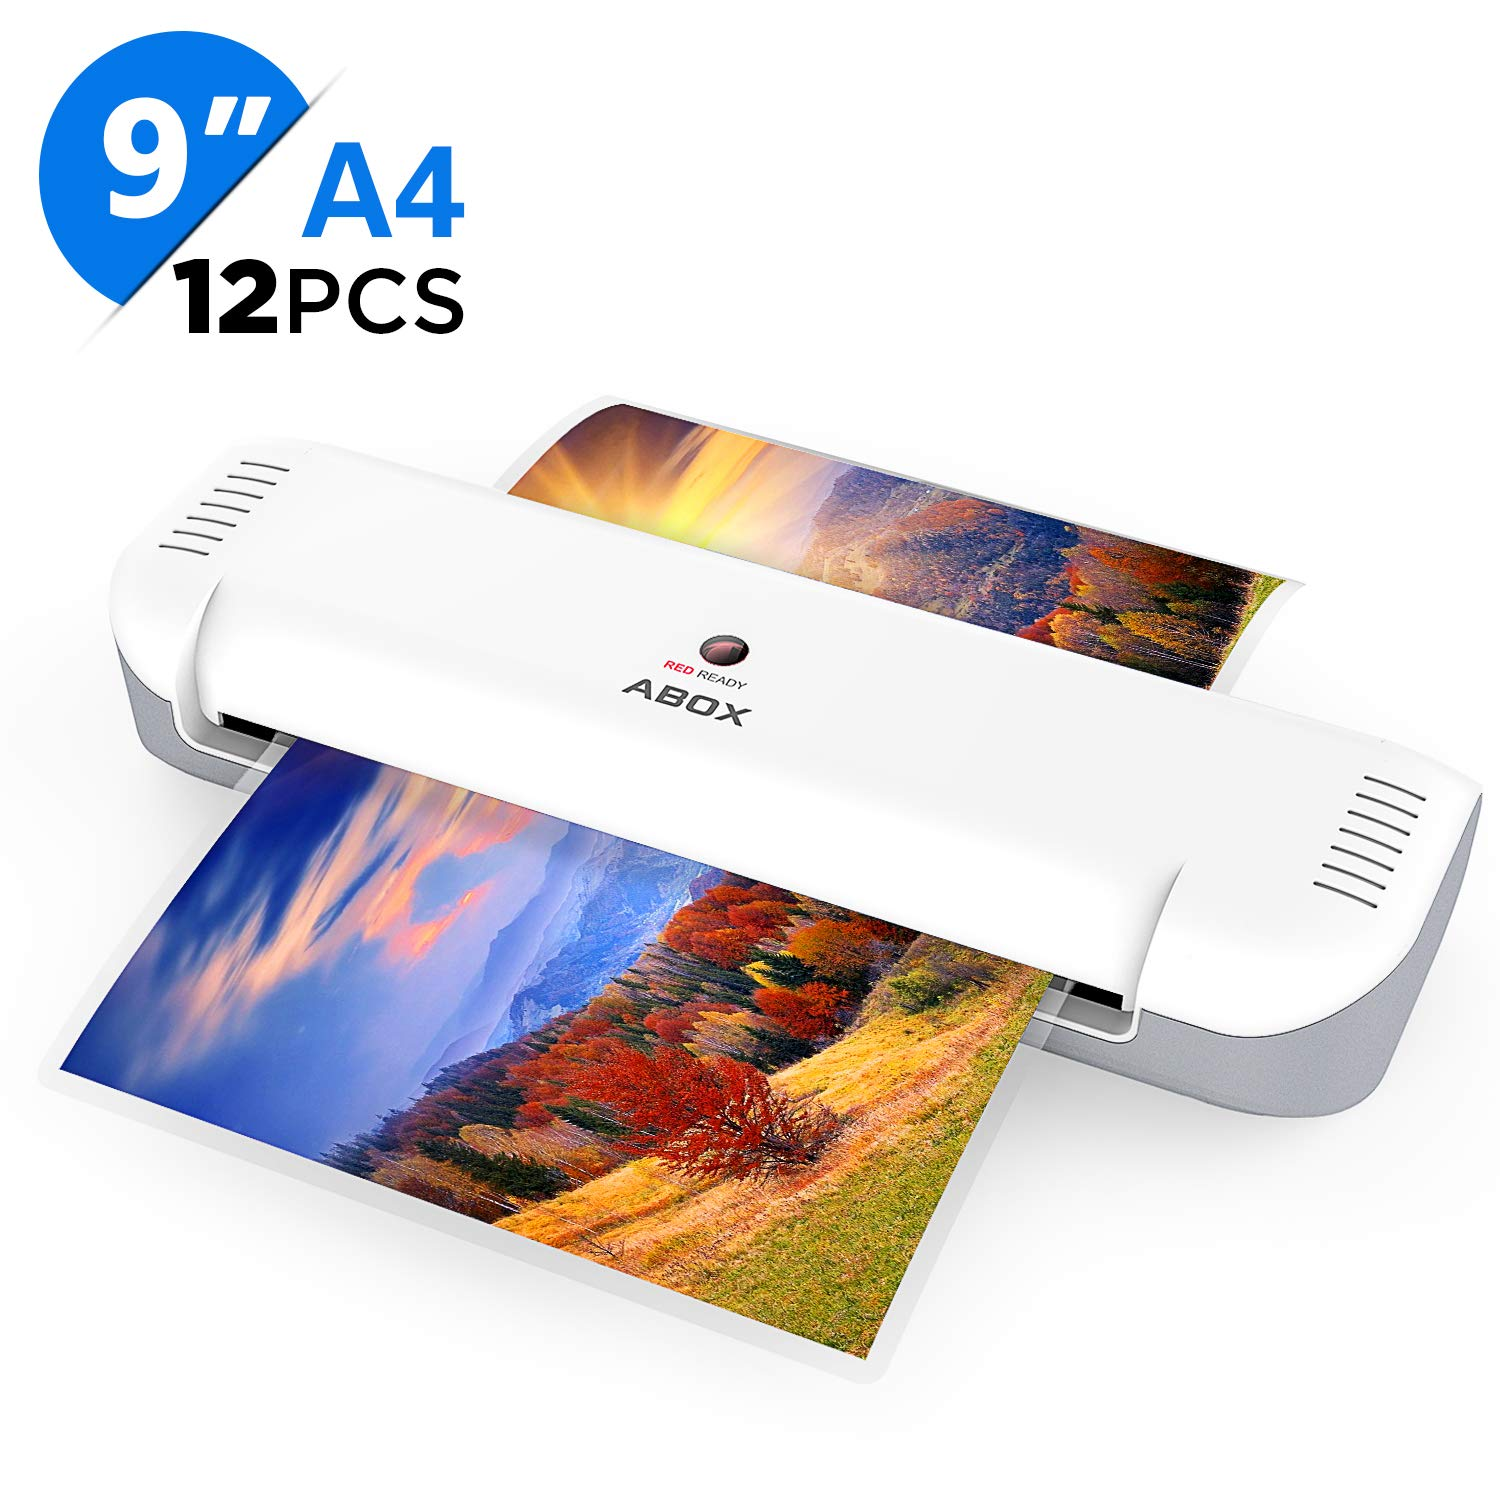 ABOX 9'' Thermal Laminator Machine for A4/A5/A7, 2019 Newest Portable  Laminating Machine with 12 Laminating Pouches, Two Roller System, 2 Min  Fast